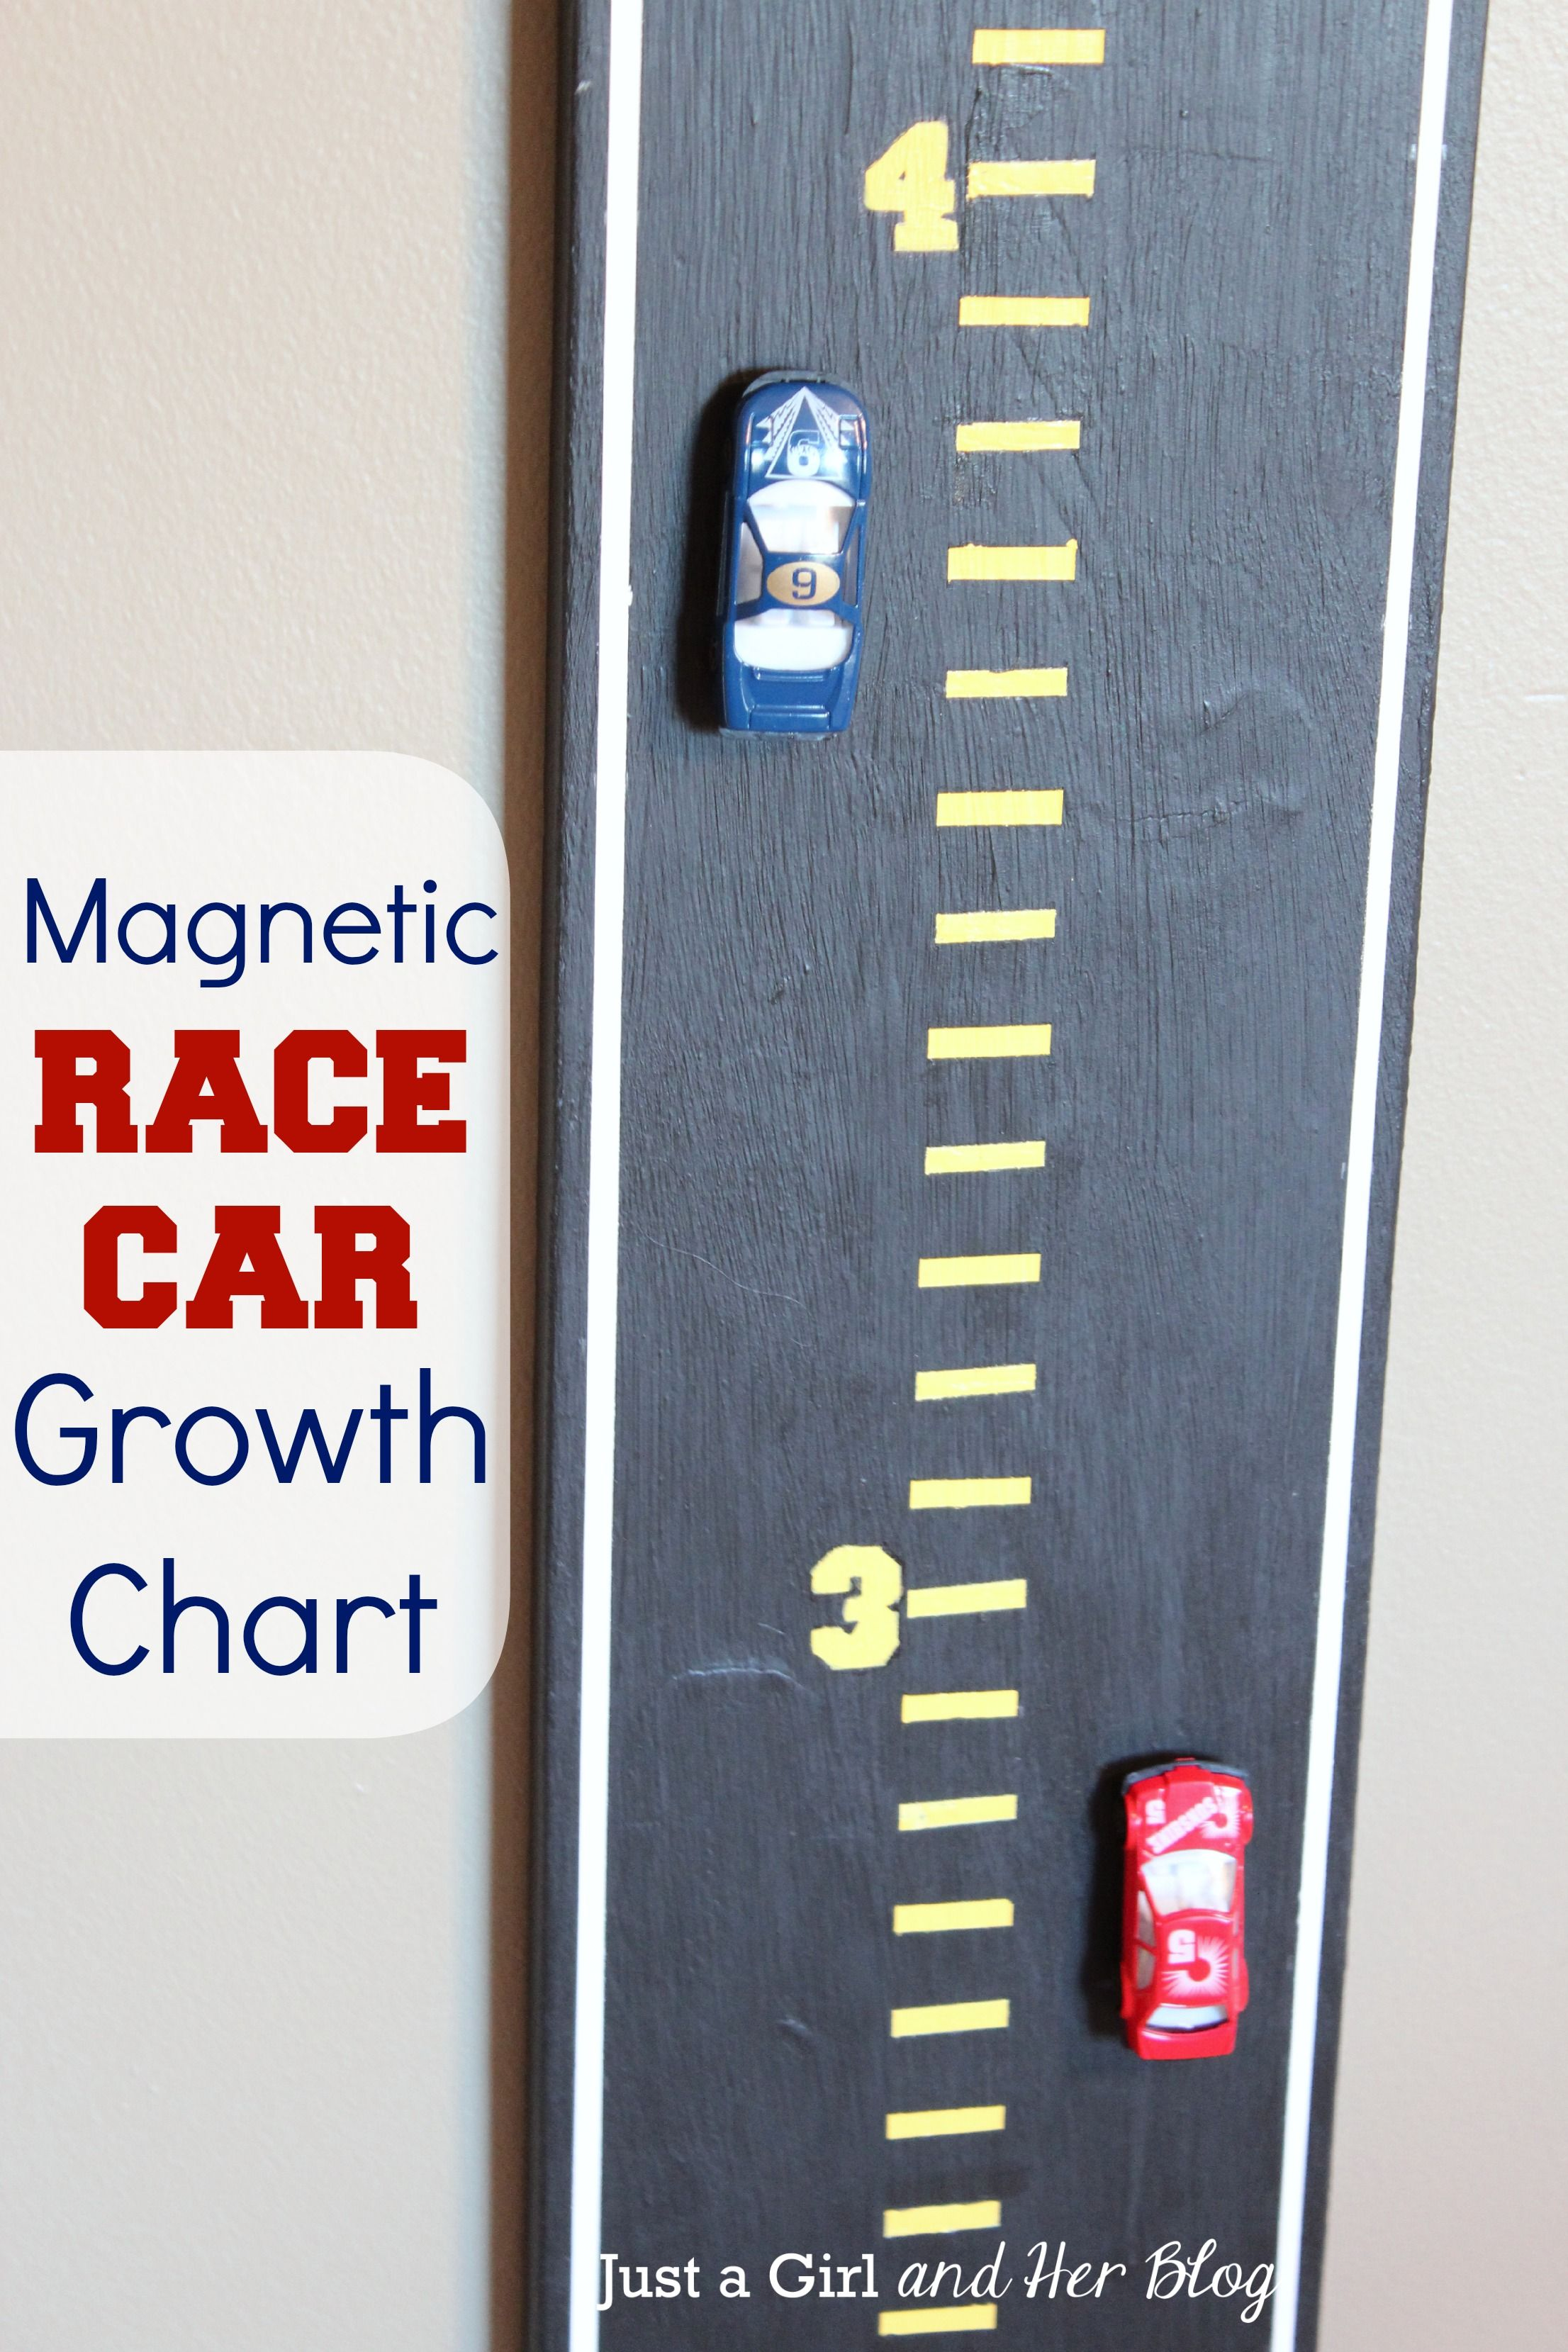 Magnetic race car growth chart growth charts chart and cars fun magnetic race car growth chart by just a girl and her blog perfect nvjuhfo Choice Image